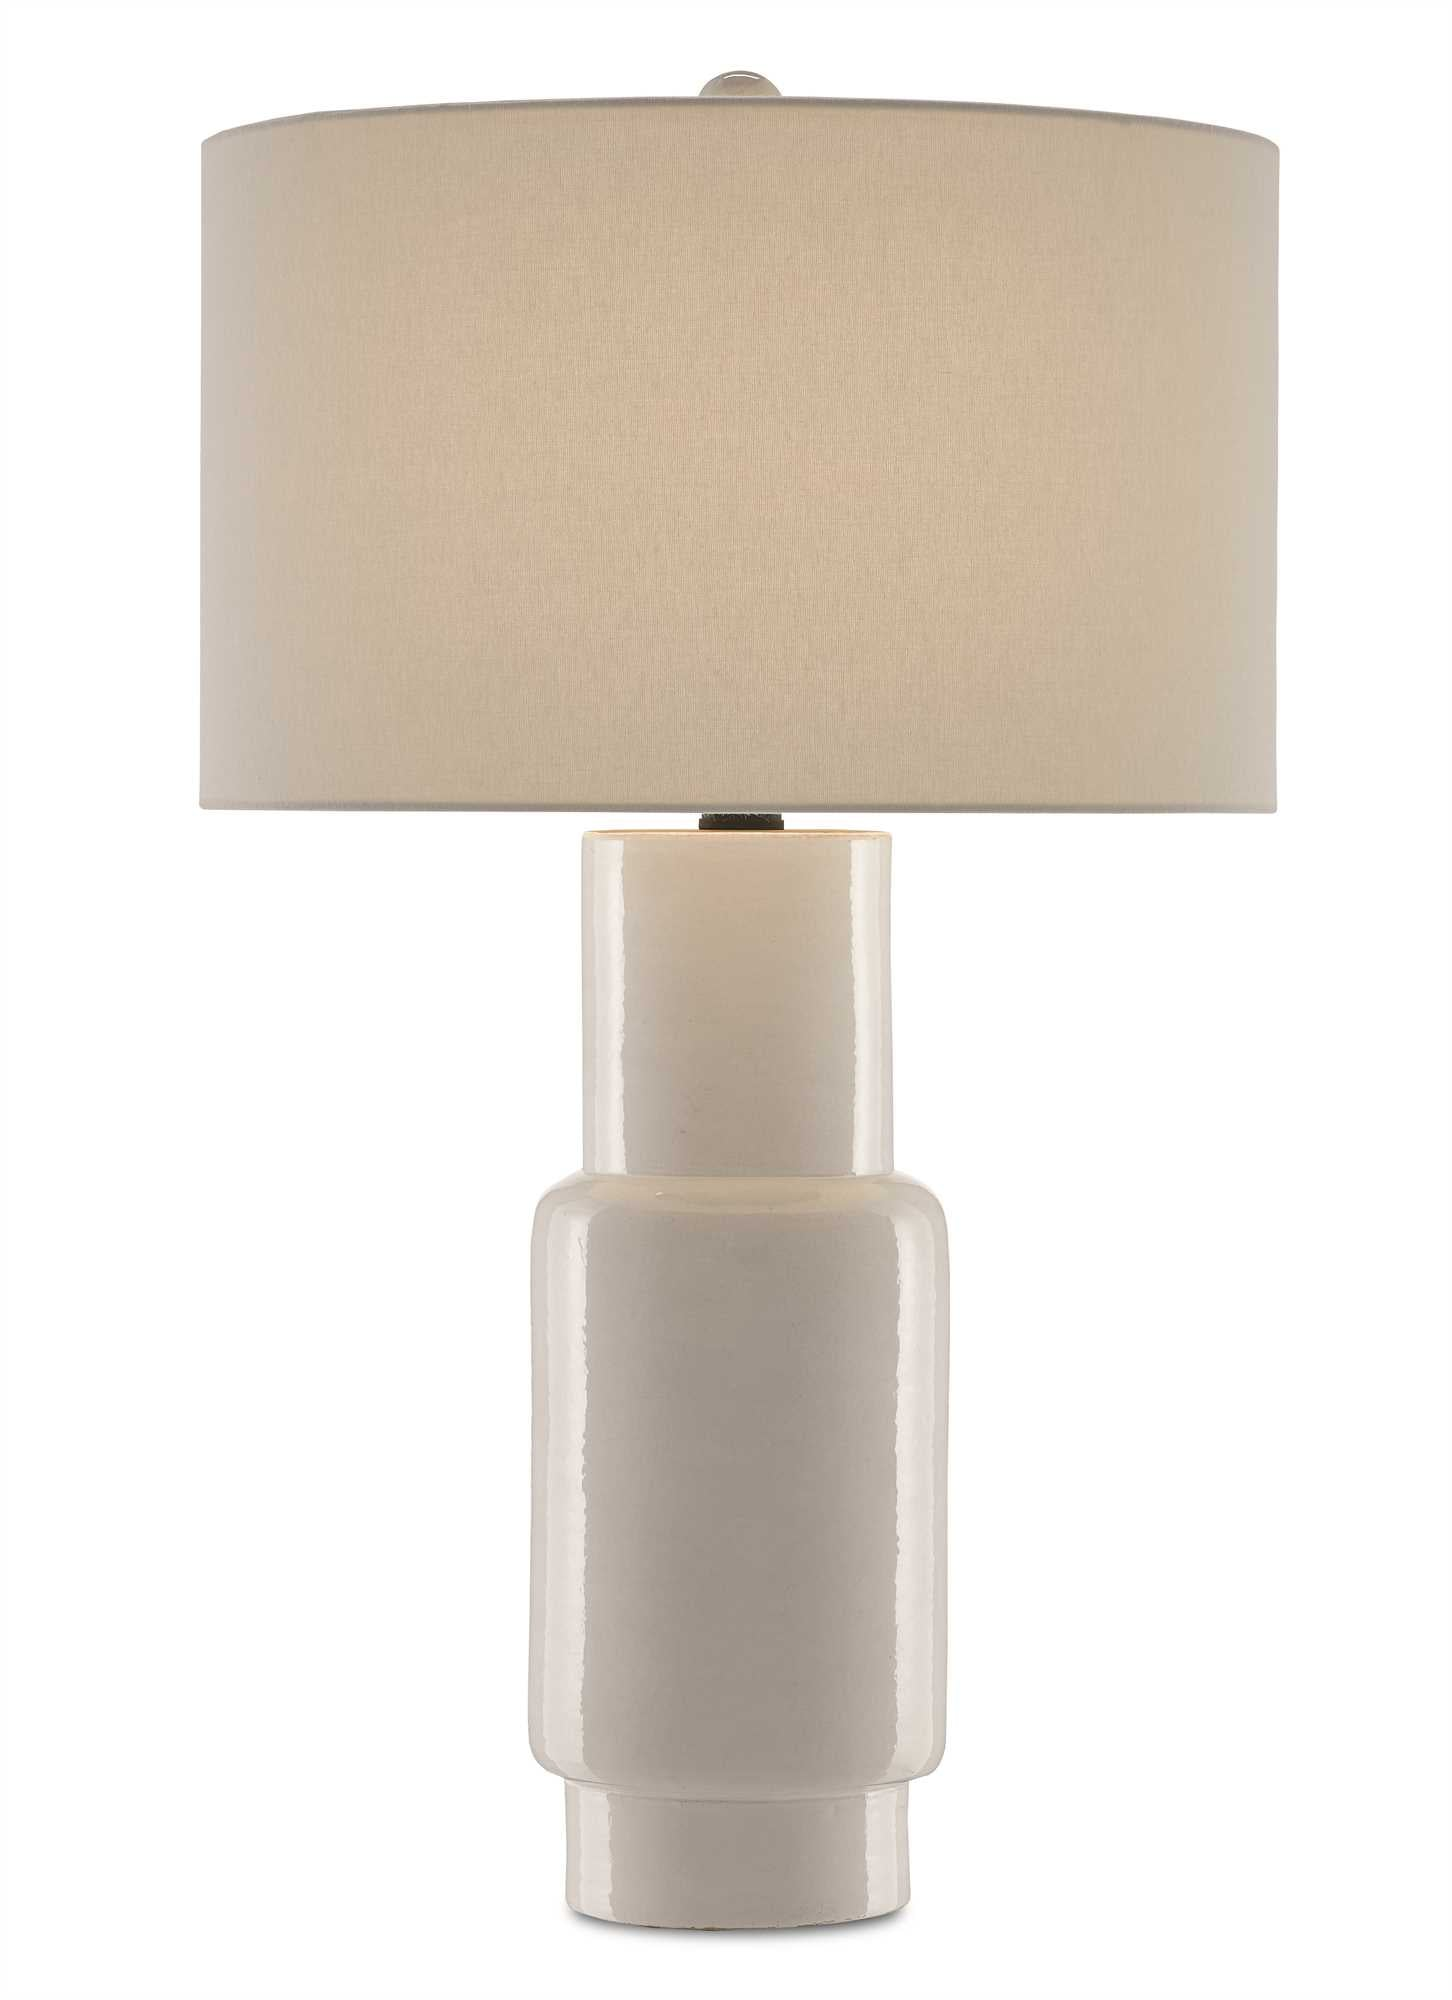 Currey and Company Janeen Table Lamp, White 6000-0300